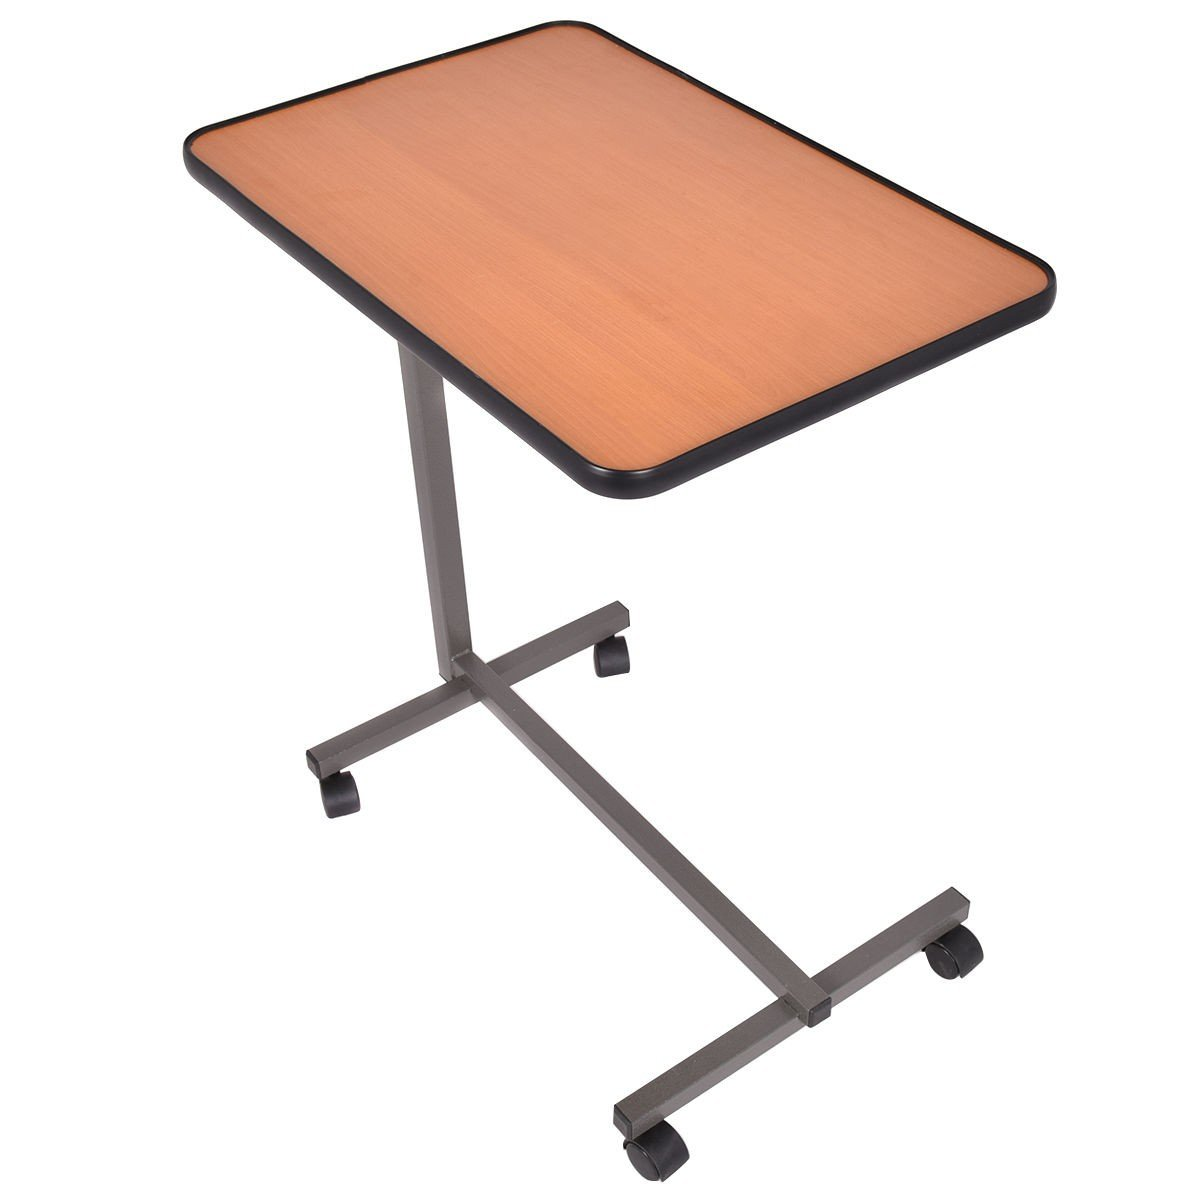 DreamHank Medical Adjustable Overbed Table with wheels for Hospital and Home Use (Beige)